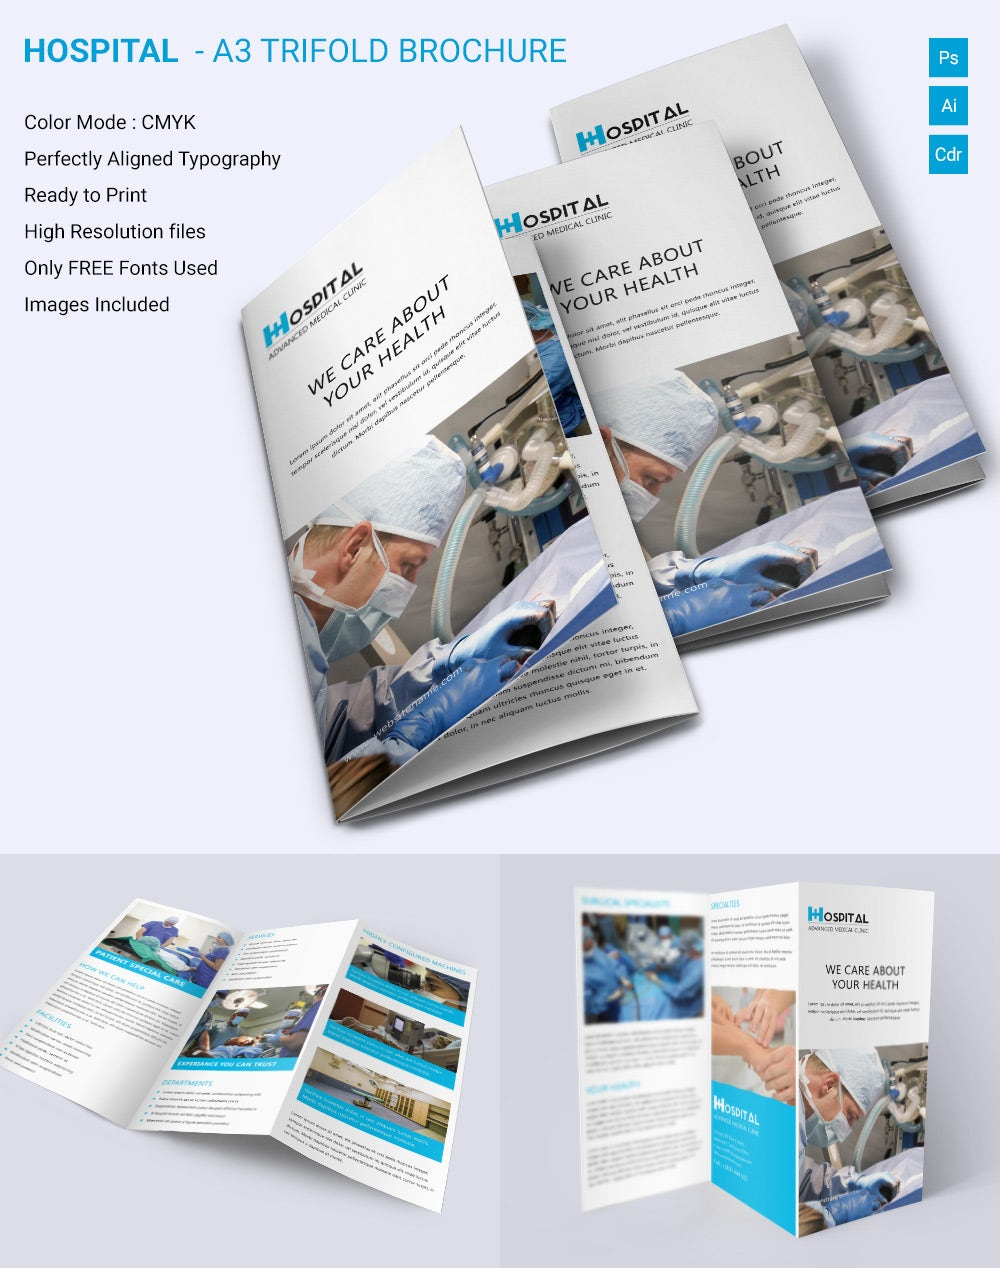 brochure pamphlet template - medical brochure template 39 free psd ai vector eps